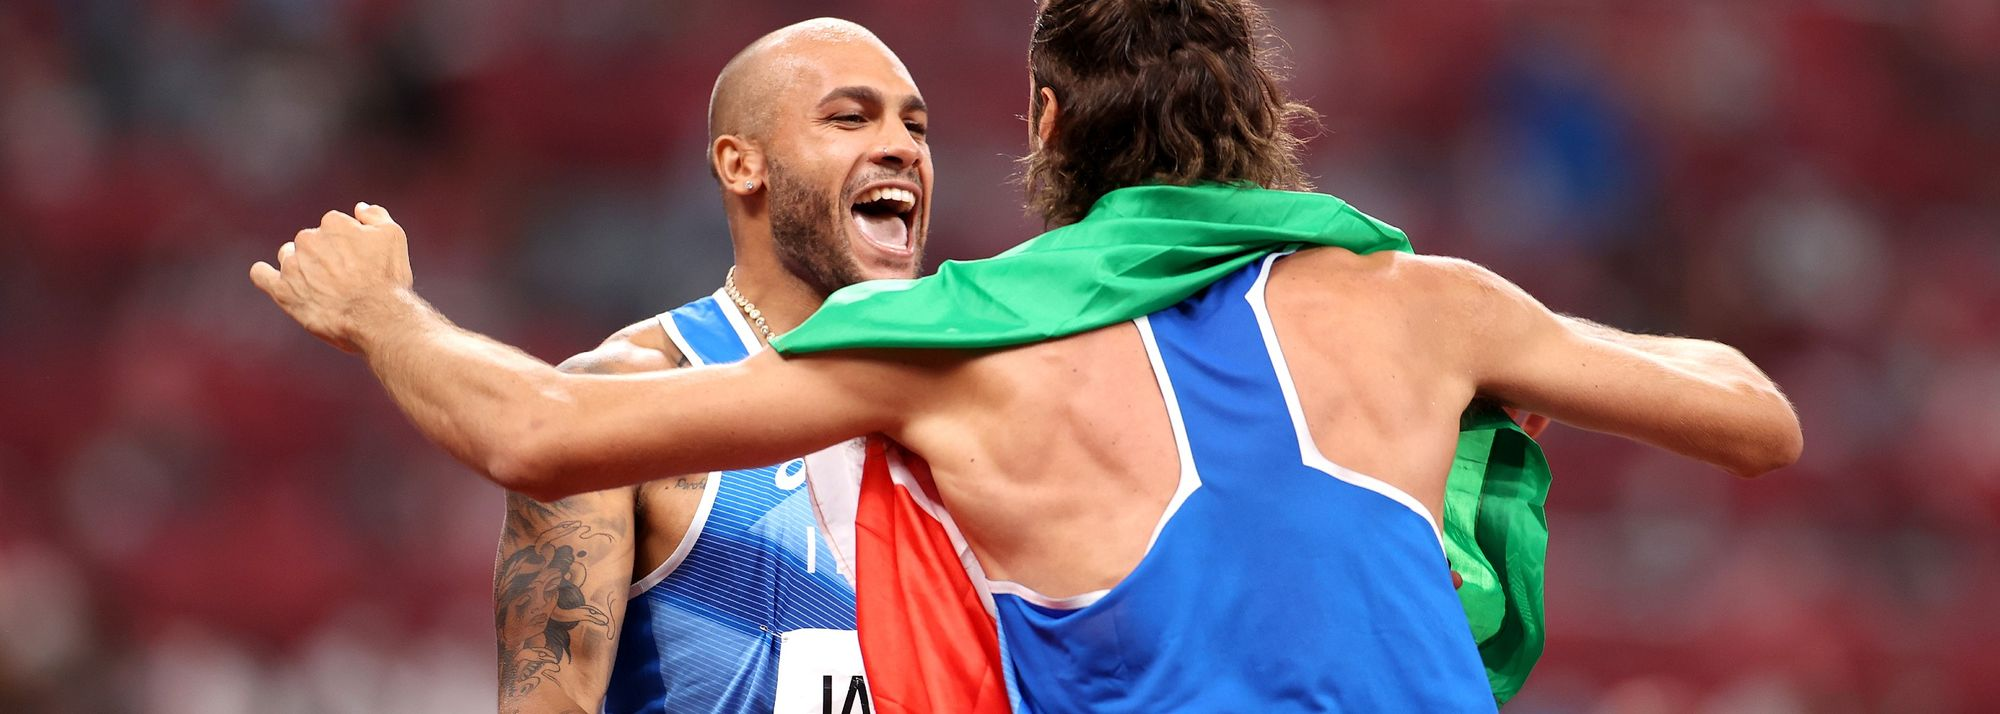 Sunday evening saw a 100m win by Lamont Marcell Jacobs, joint triumph for Mutaz Barshim and Gianmarco Tamberi, and a world triple jump record for Yulimar Rojas.